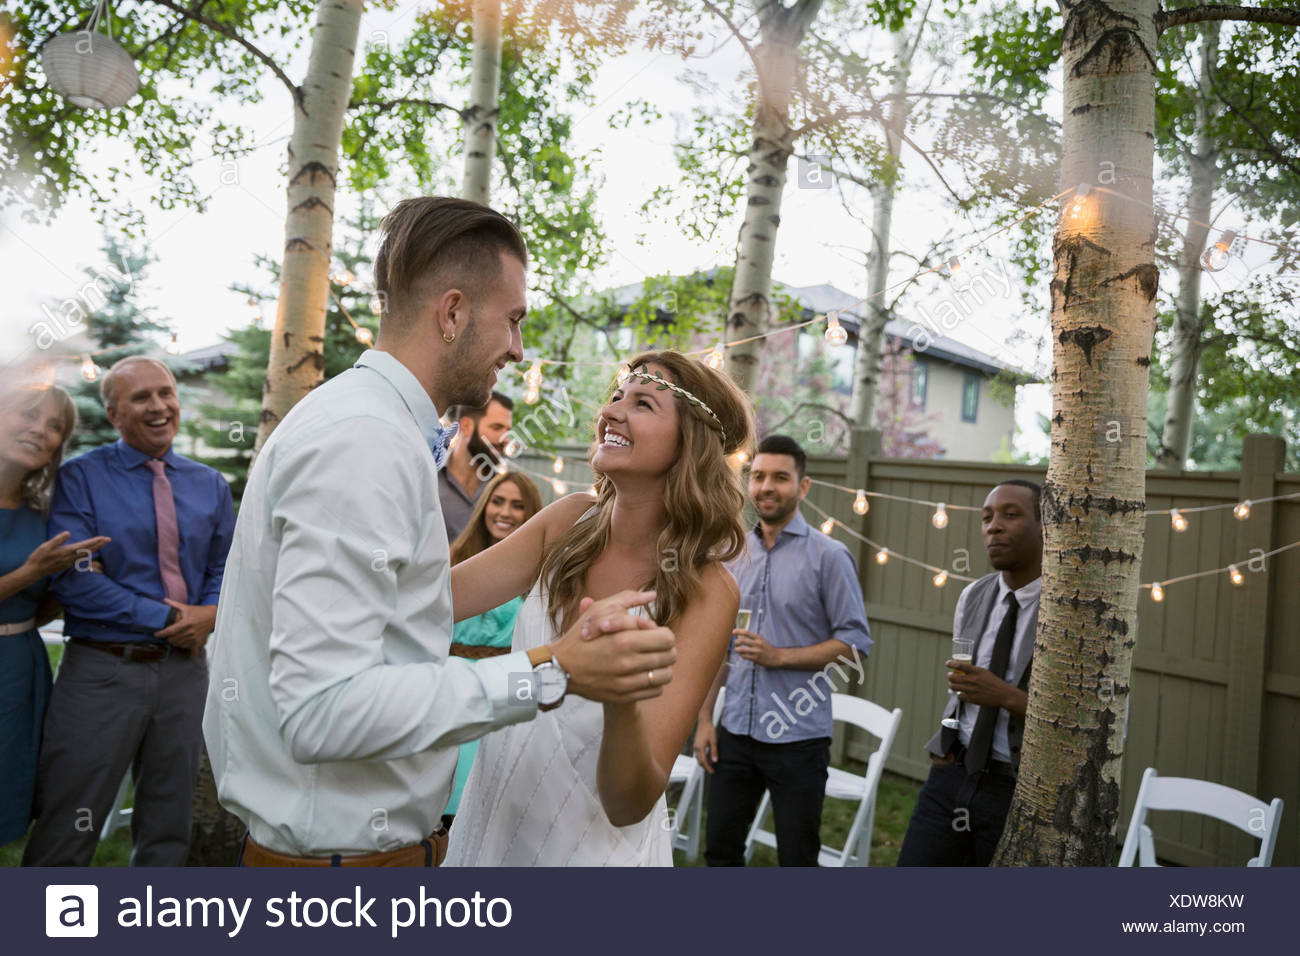 Bride and Groom dancing au jardin réception de mariage Photo Stock